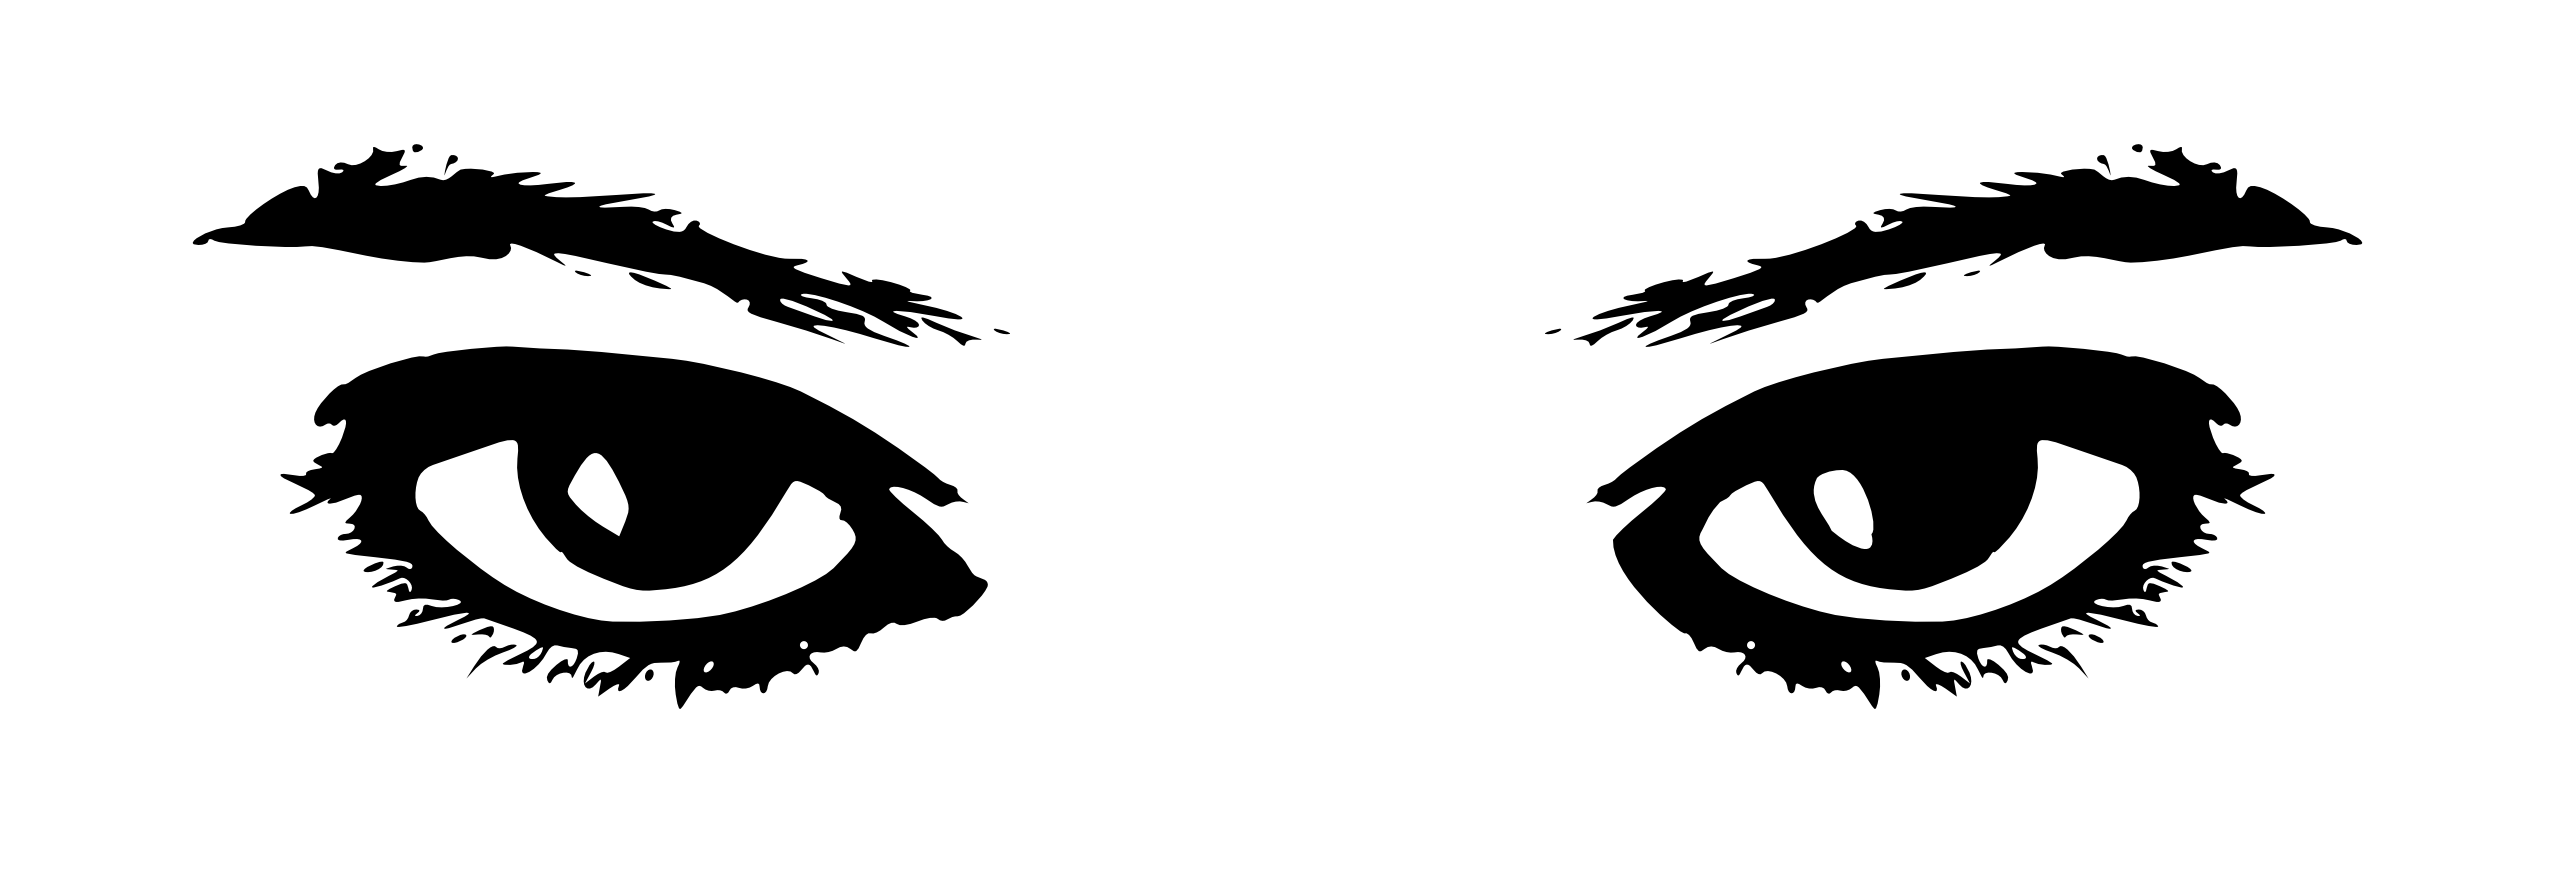 simple eye clipart black and